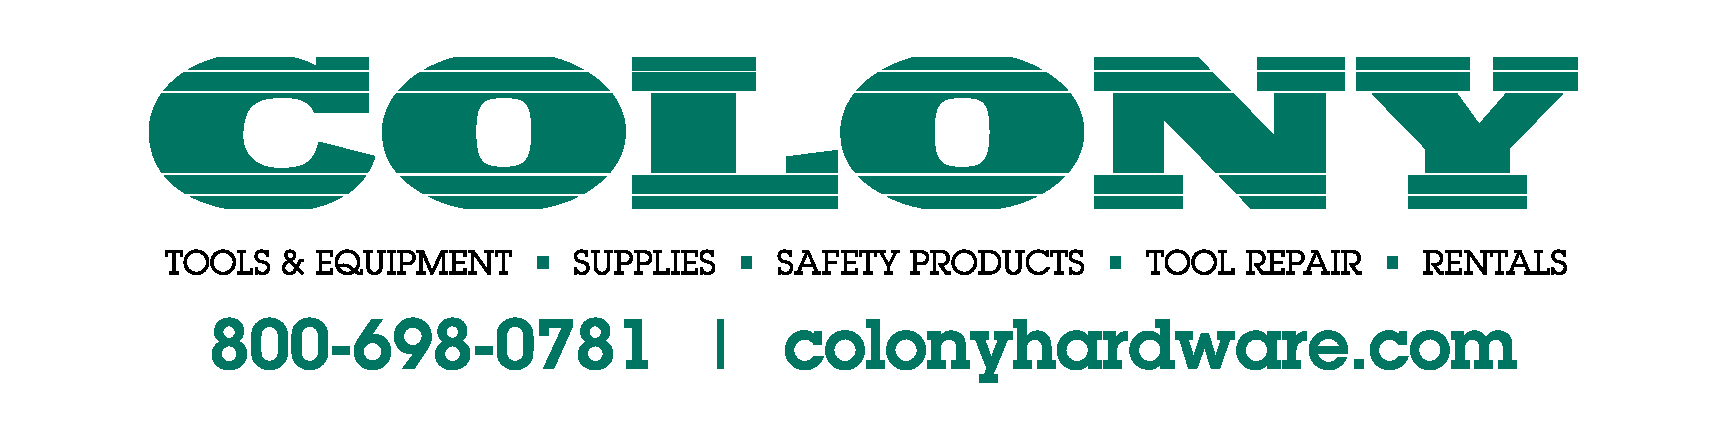 Colony Hardware logo